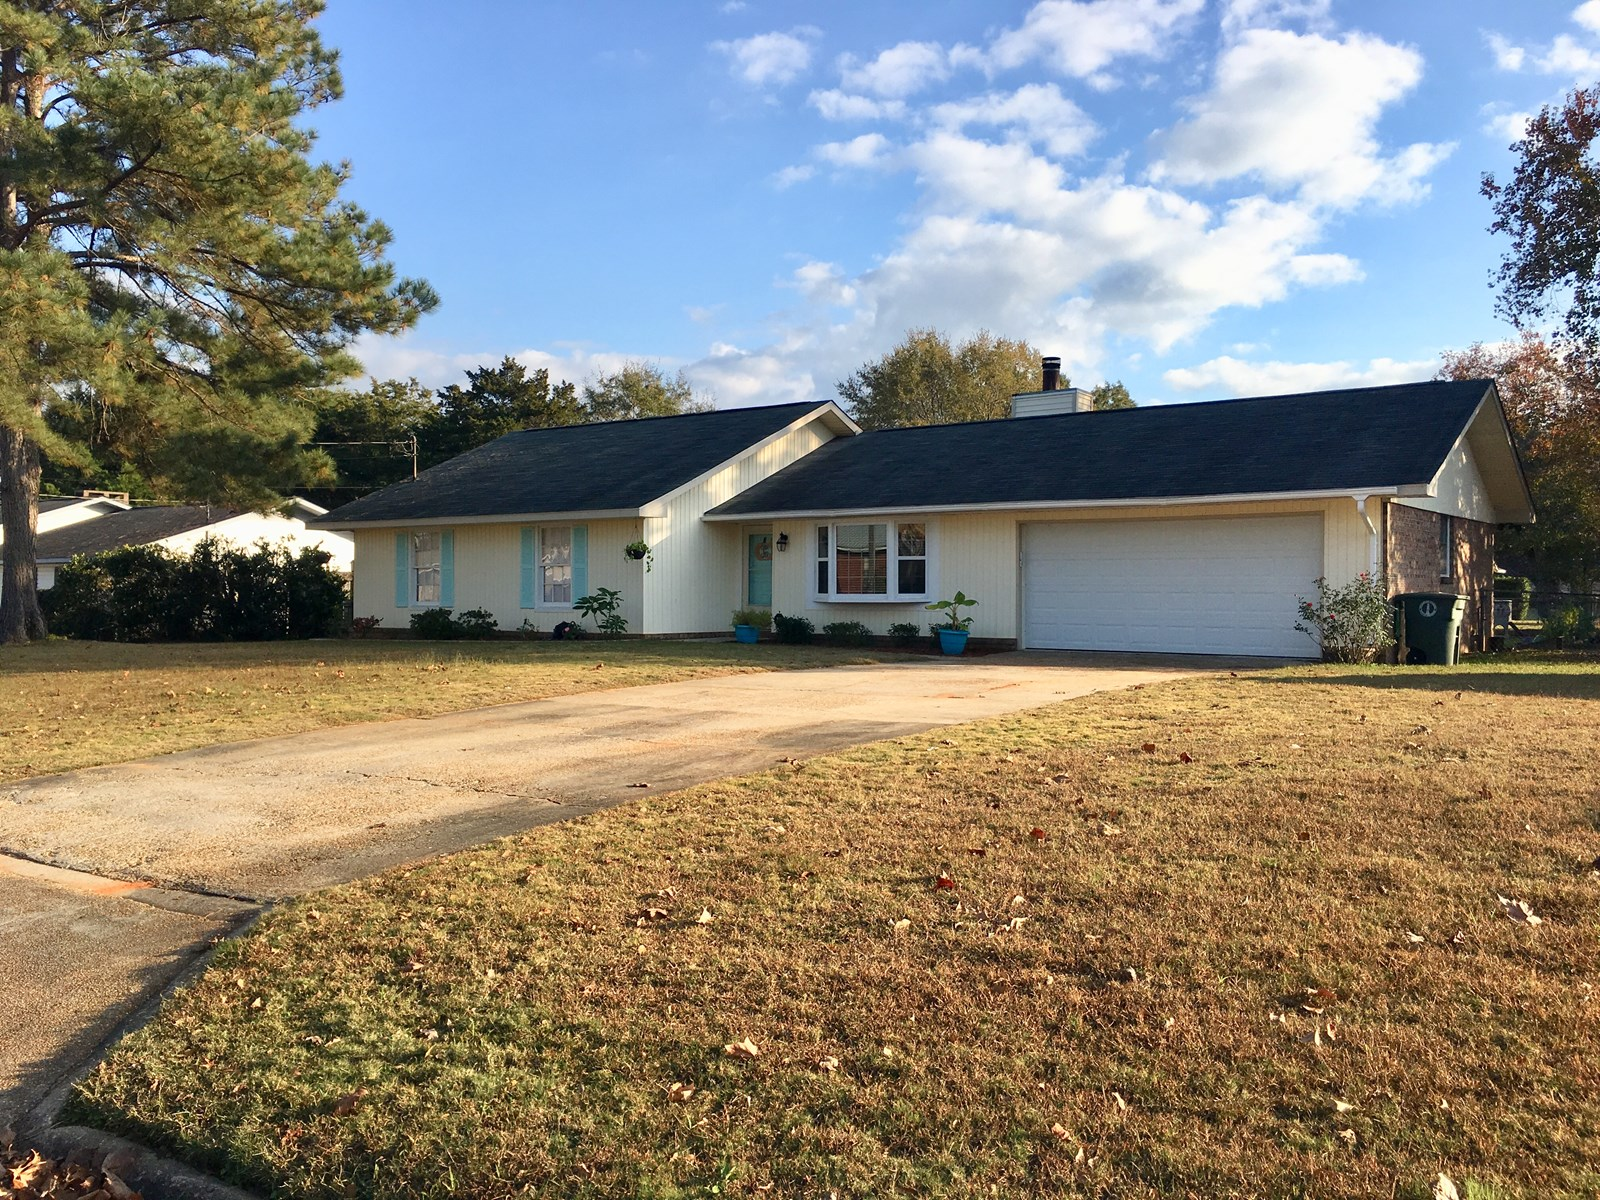 BEAUTIFUL UPDATED HOME FOR SALE ENTERPRISE, ALABAMA